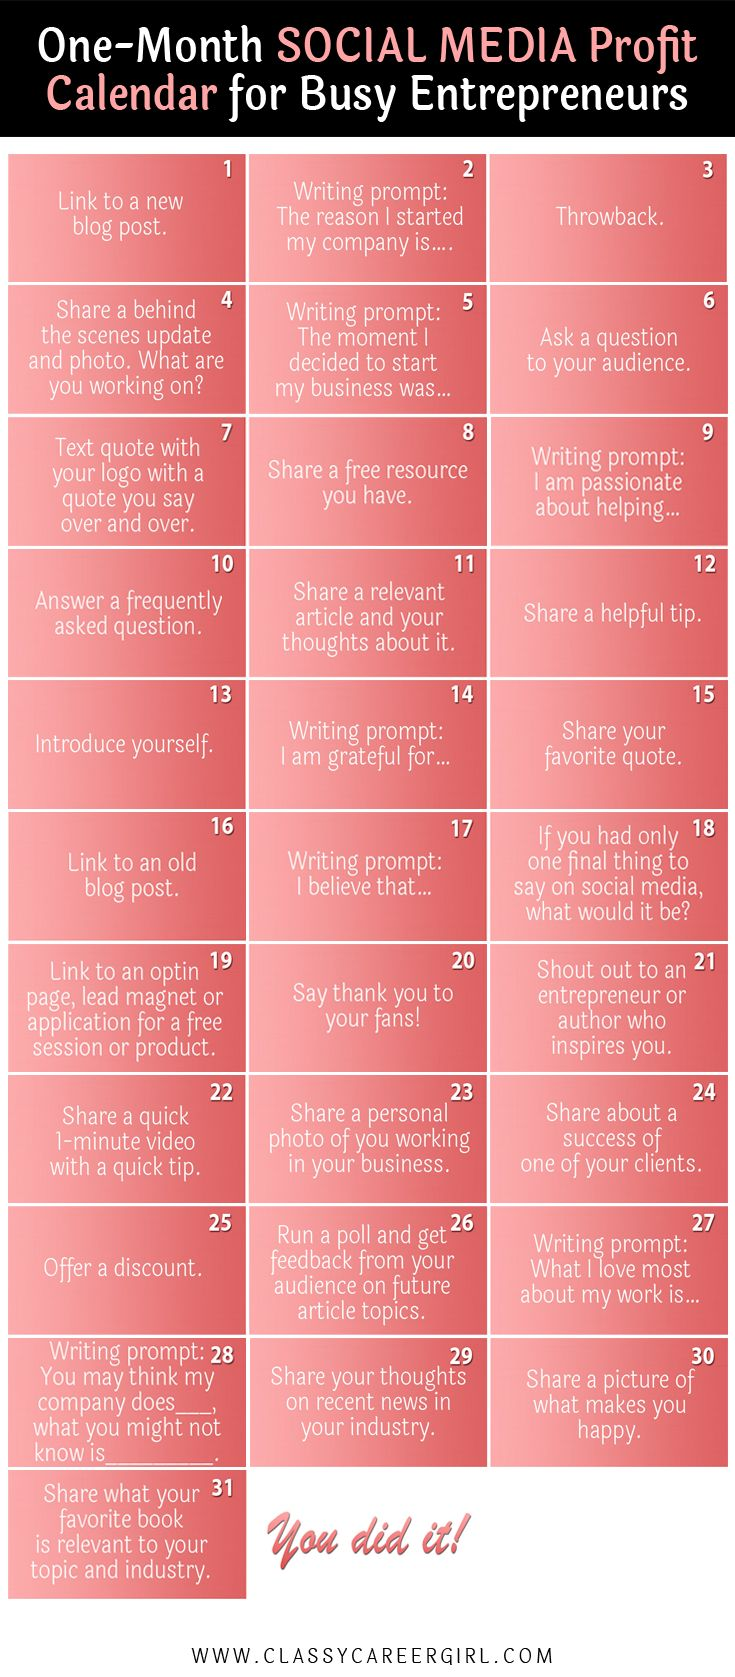 If you get stuck with what to post on social media every day, this will help.   I created this social media calendar because I realized that some of my posts were getting much more engagement than others. The posts where I shared the real me and really put time into the purpose behind the post, THOSE were the posts that did the best. http://www.classycareergirl.com/2016/07/social-media-calendar-entrepreneurs/